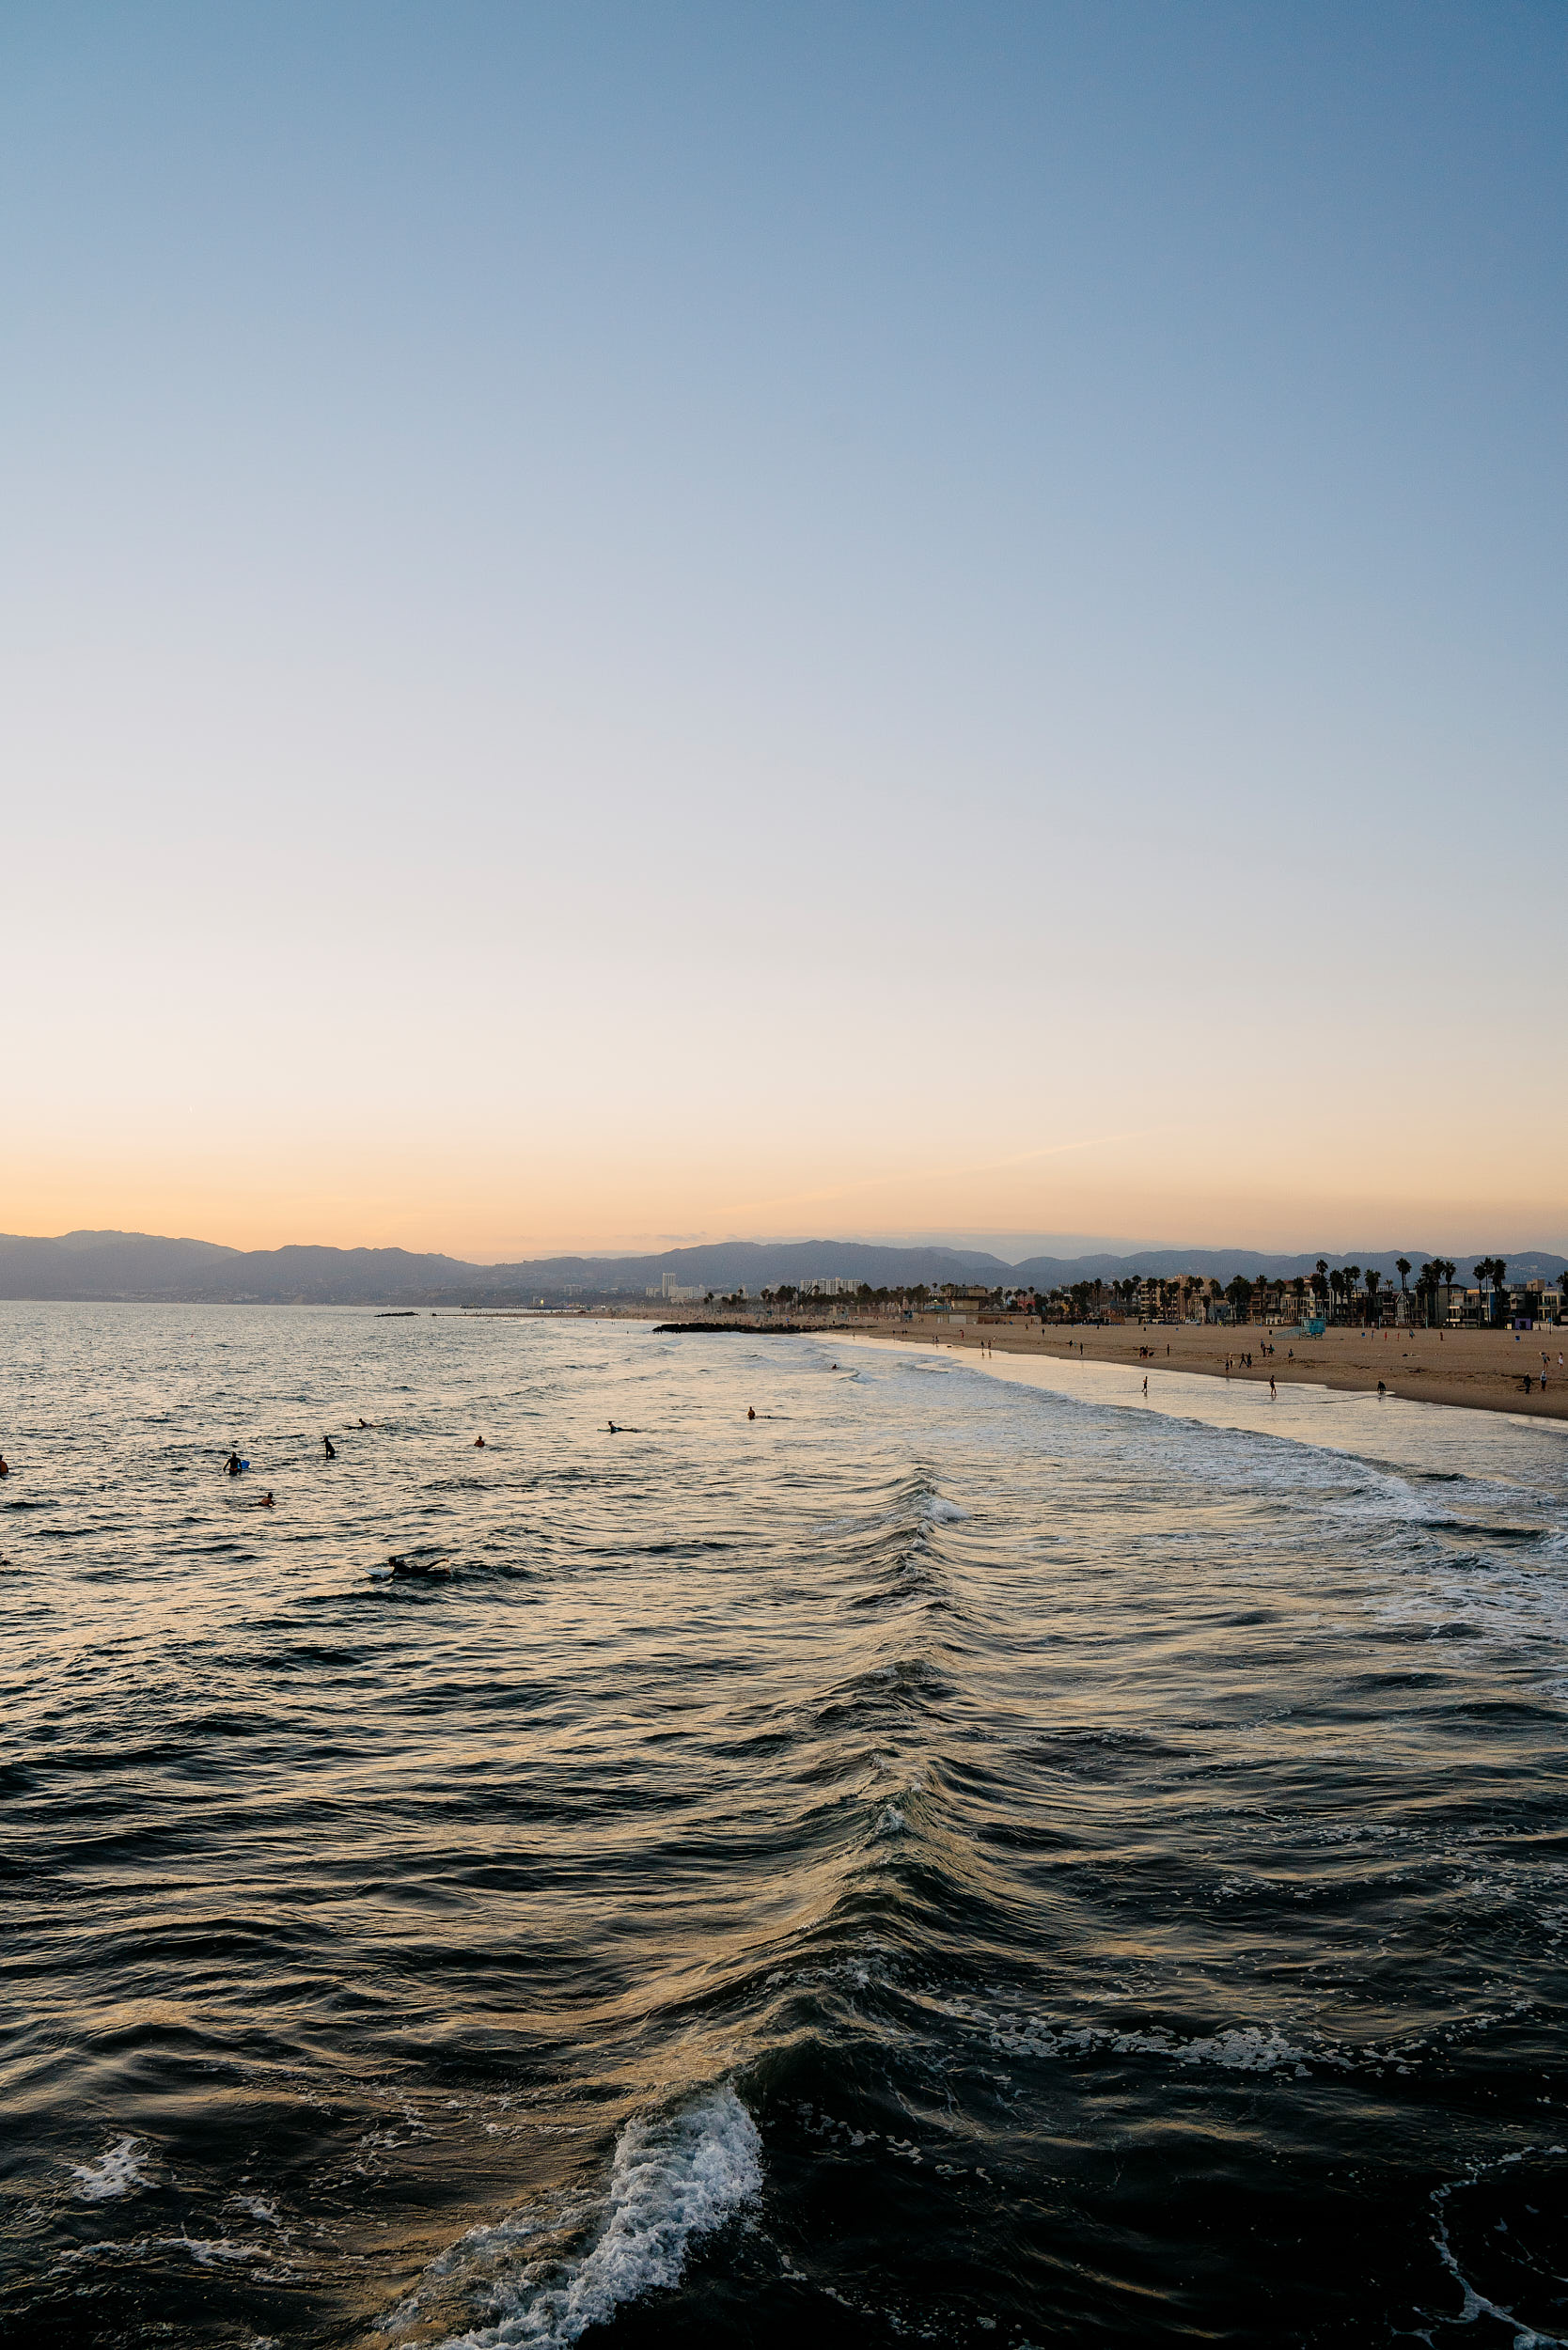 Joe Friend Photography | Street & Travel Photography | Venice Beach